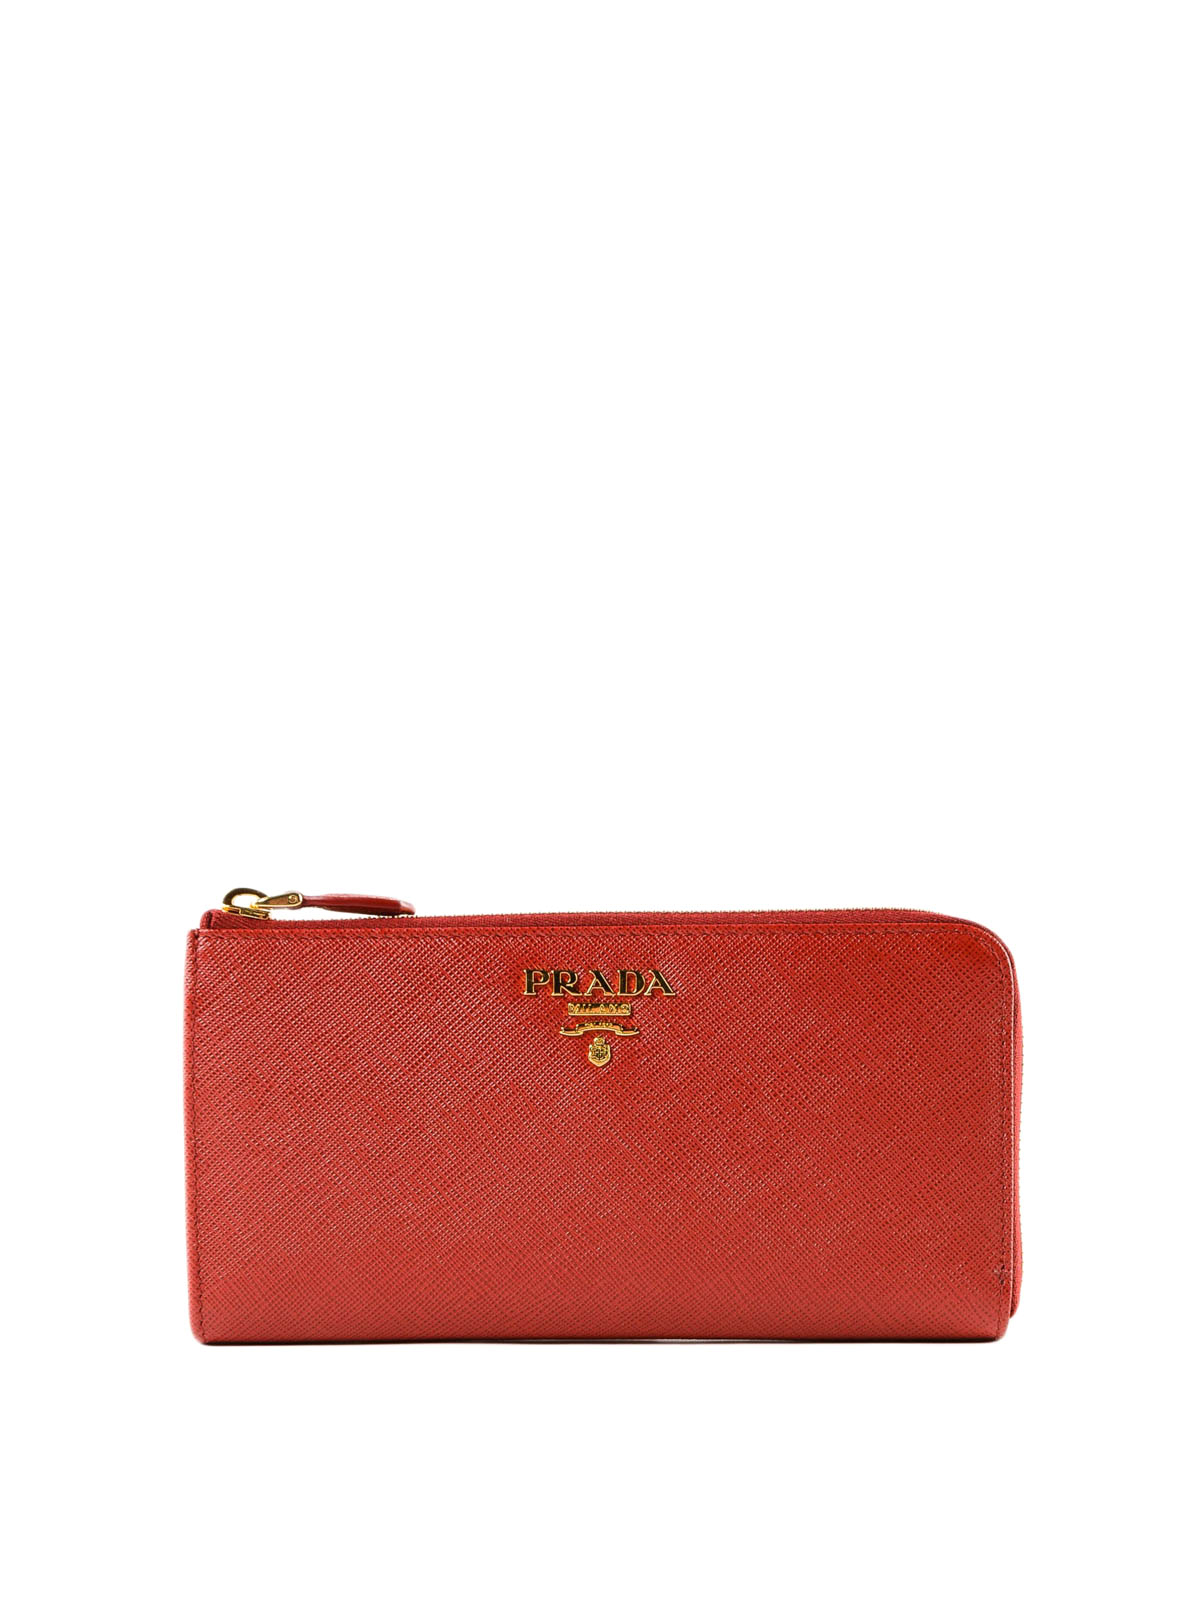 d1ab4c263e67 PRADA: wallets & purses - Red saffiano leather continental cardholder